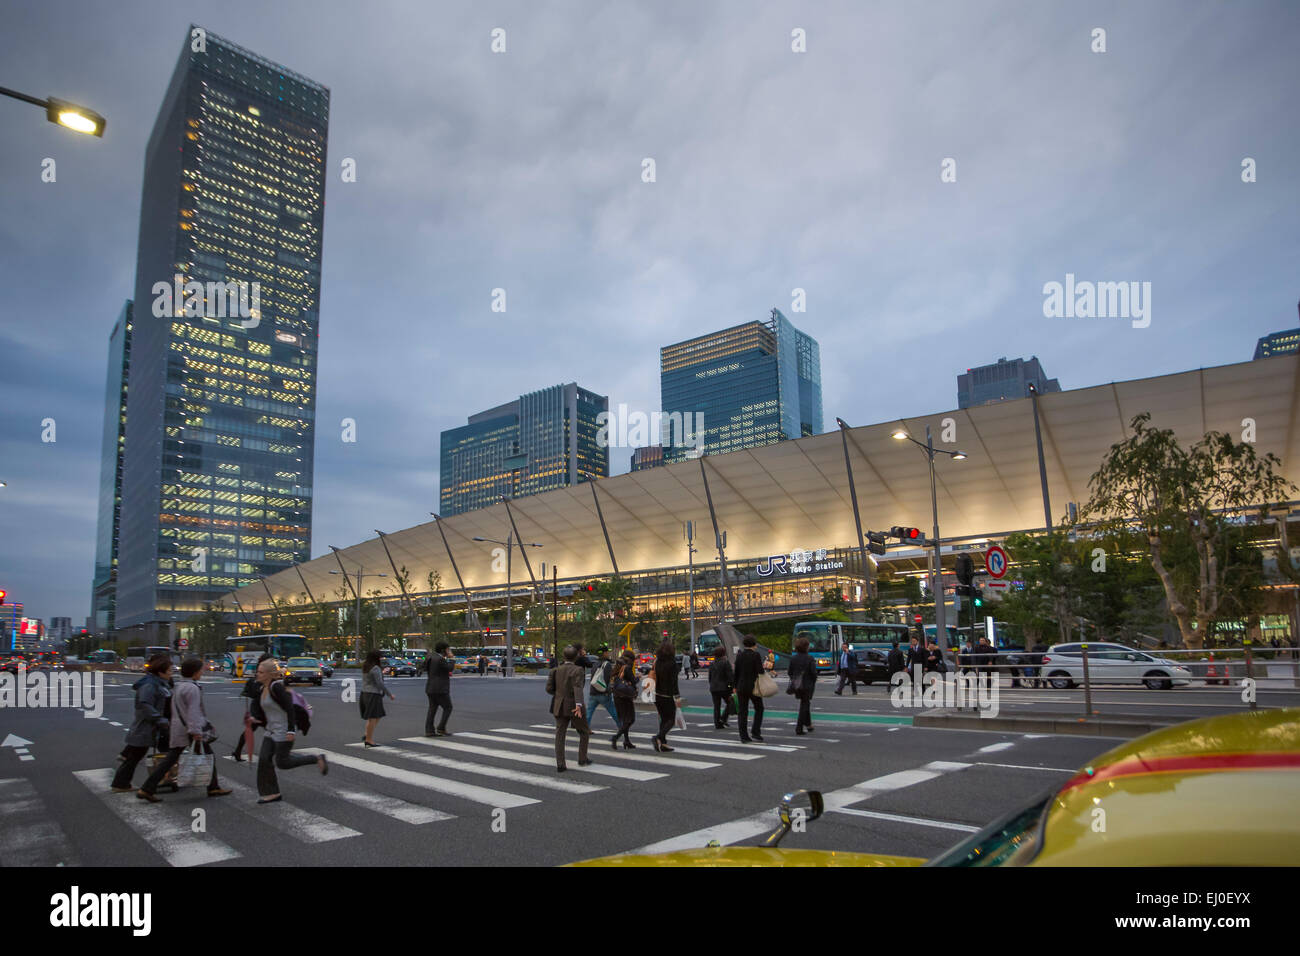 City, East side, Japan, Asia, Landscape, Station, Tokyo, architecture, colourful, crossing, downtown, pedestrian, - Stock Image